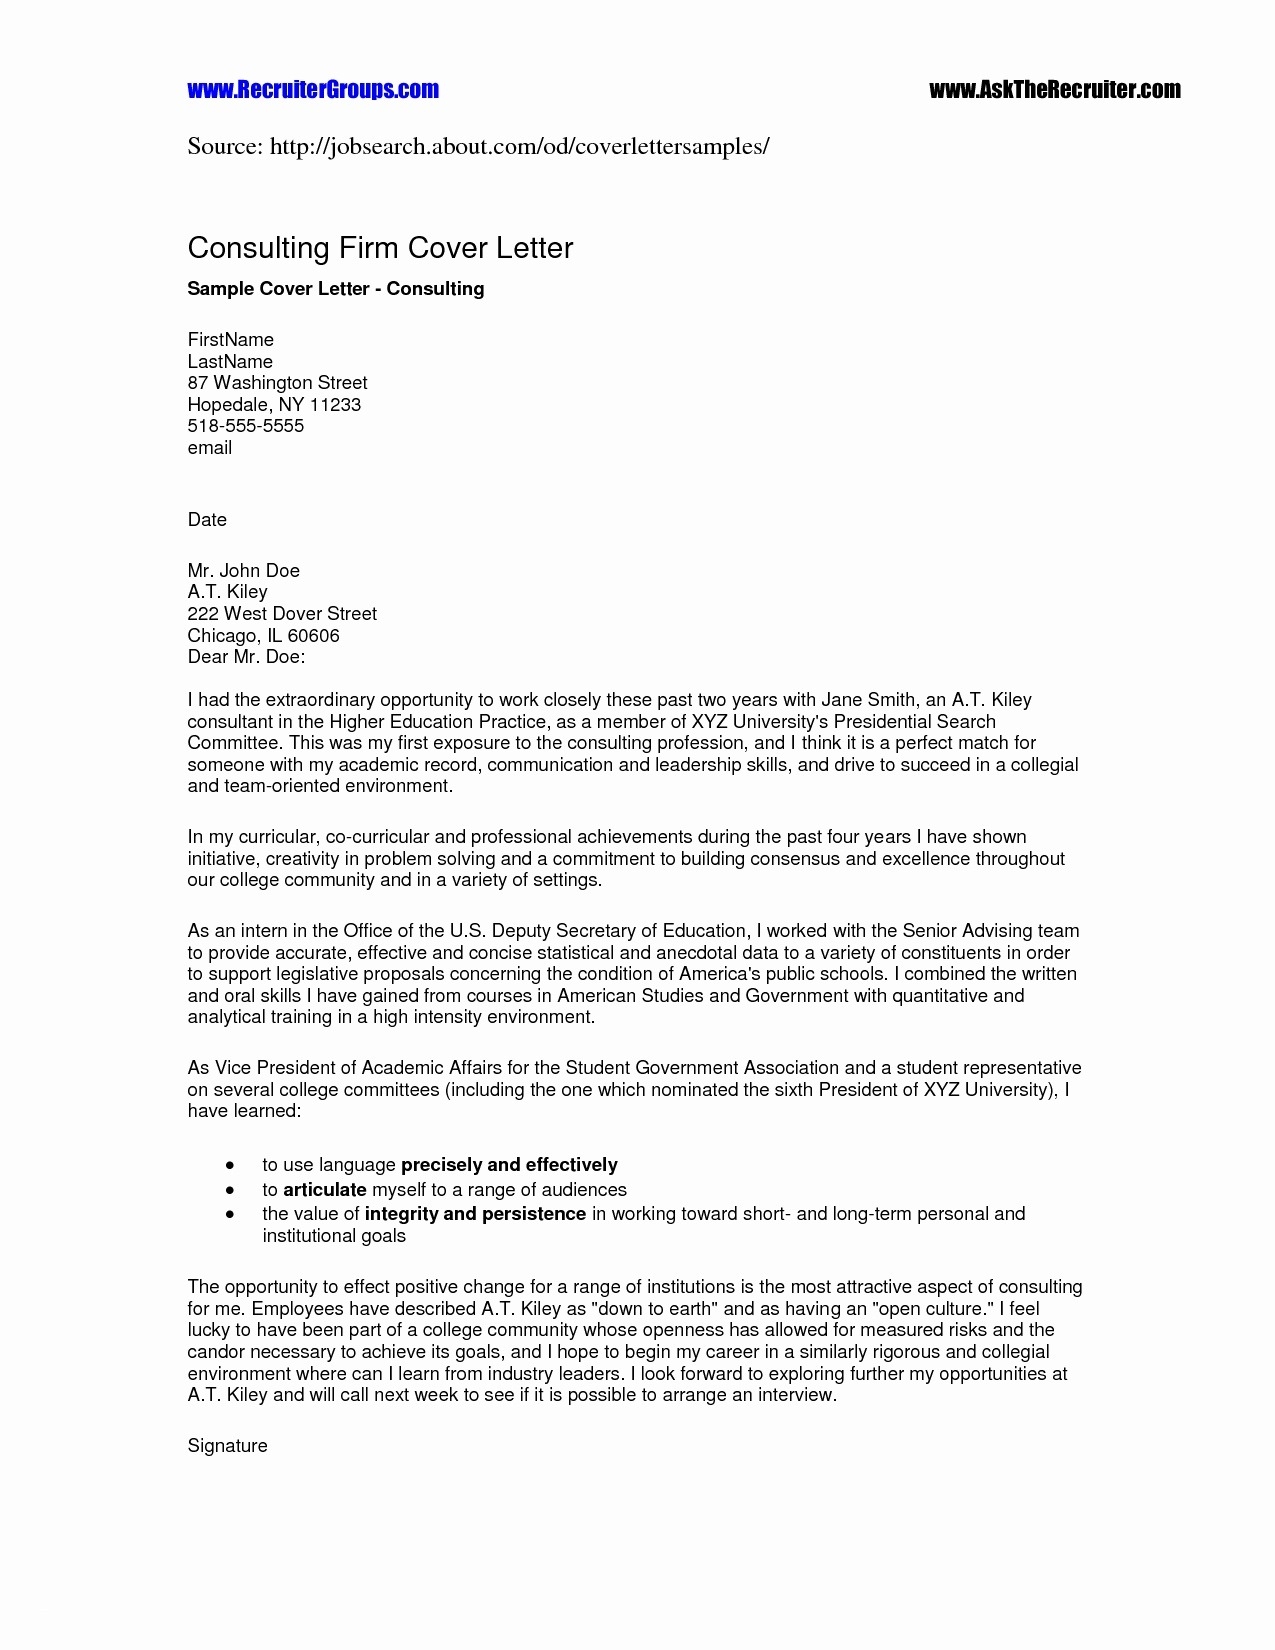 Graduate School Cover Letter Template - Puter Science Graduate Resume Inspirational Cover Letter for